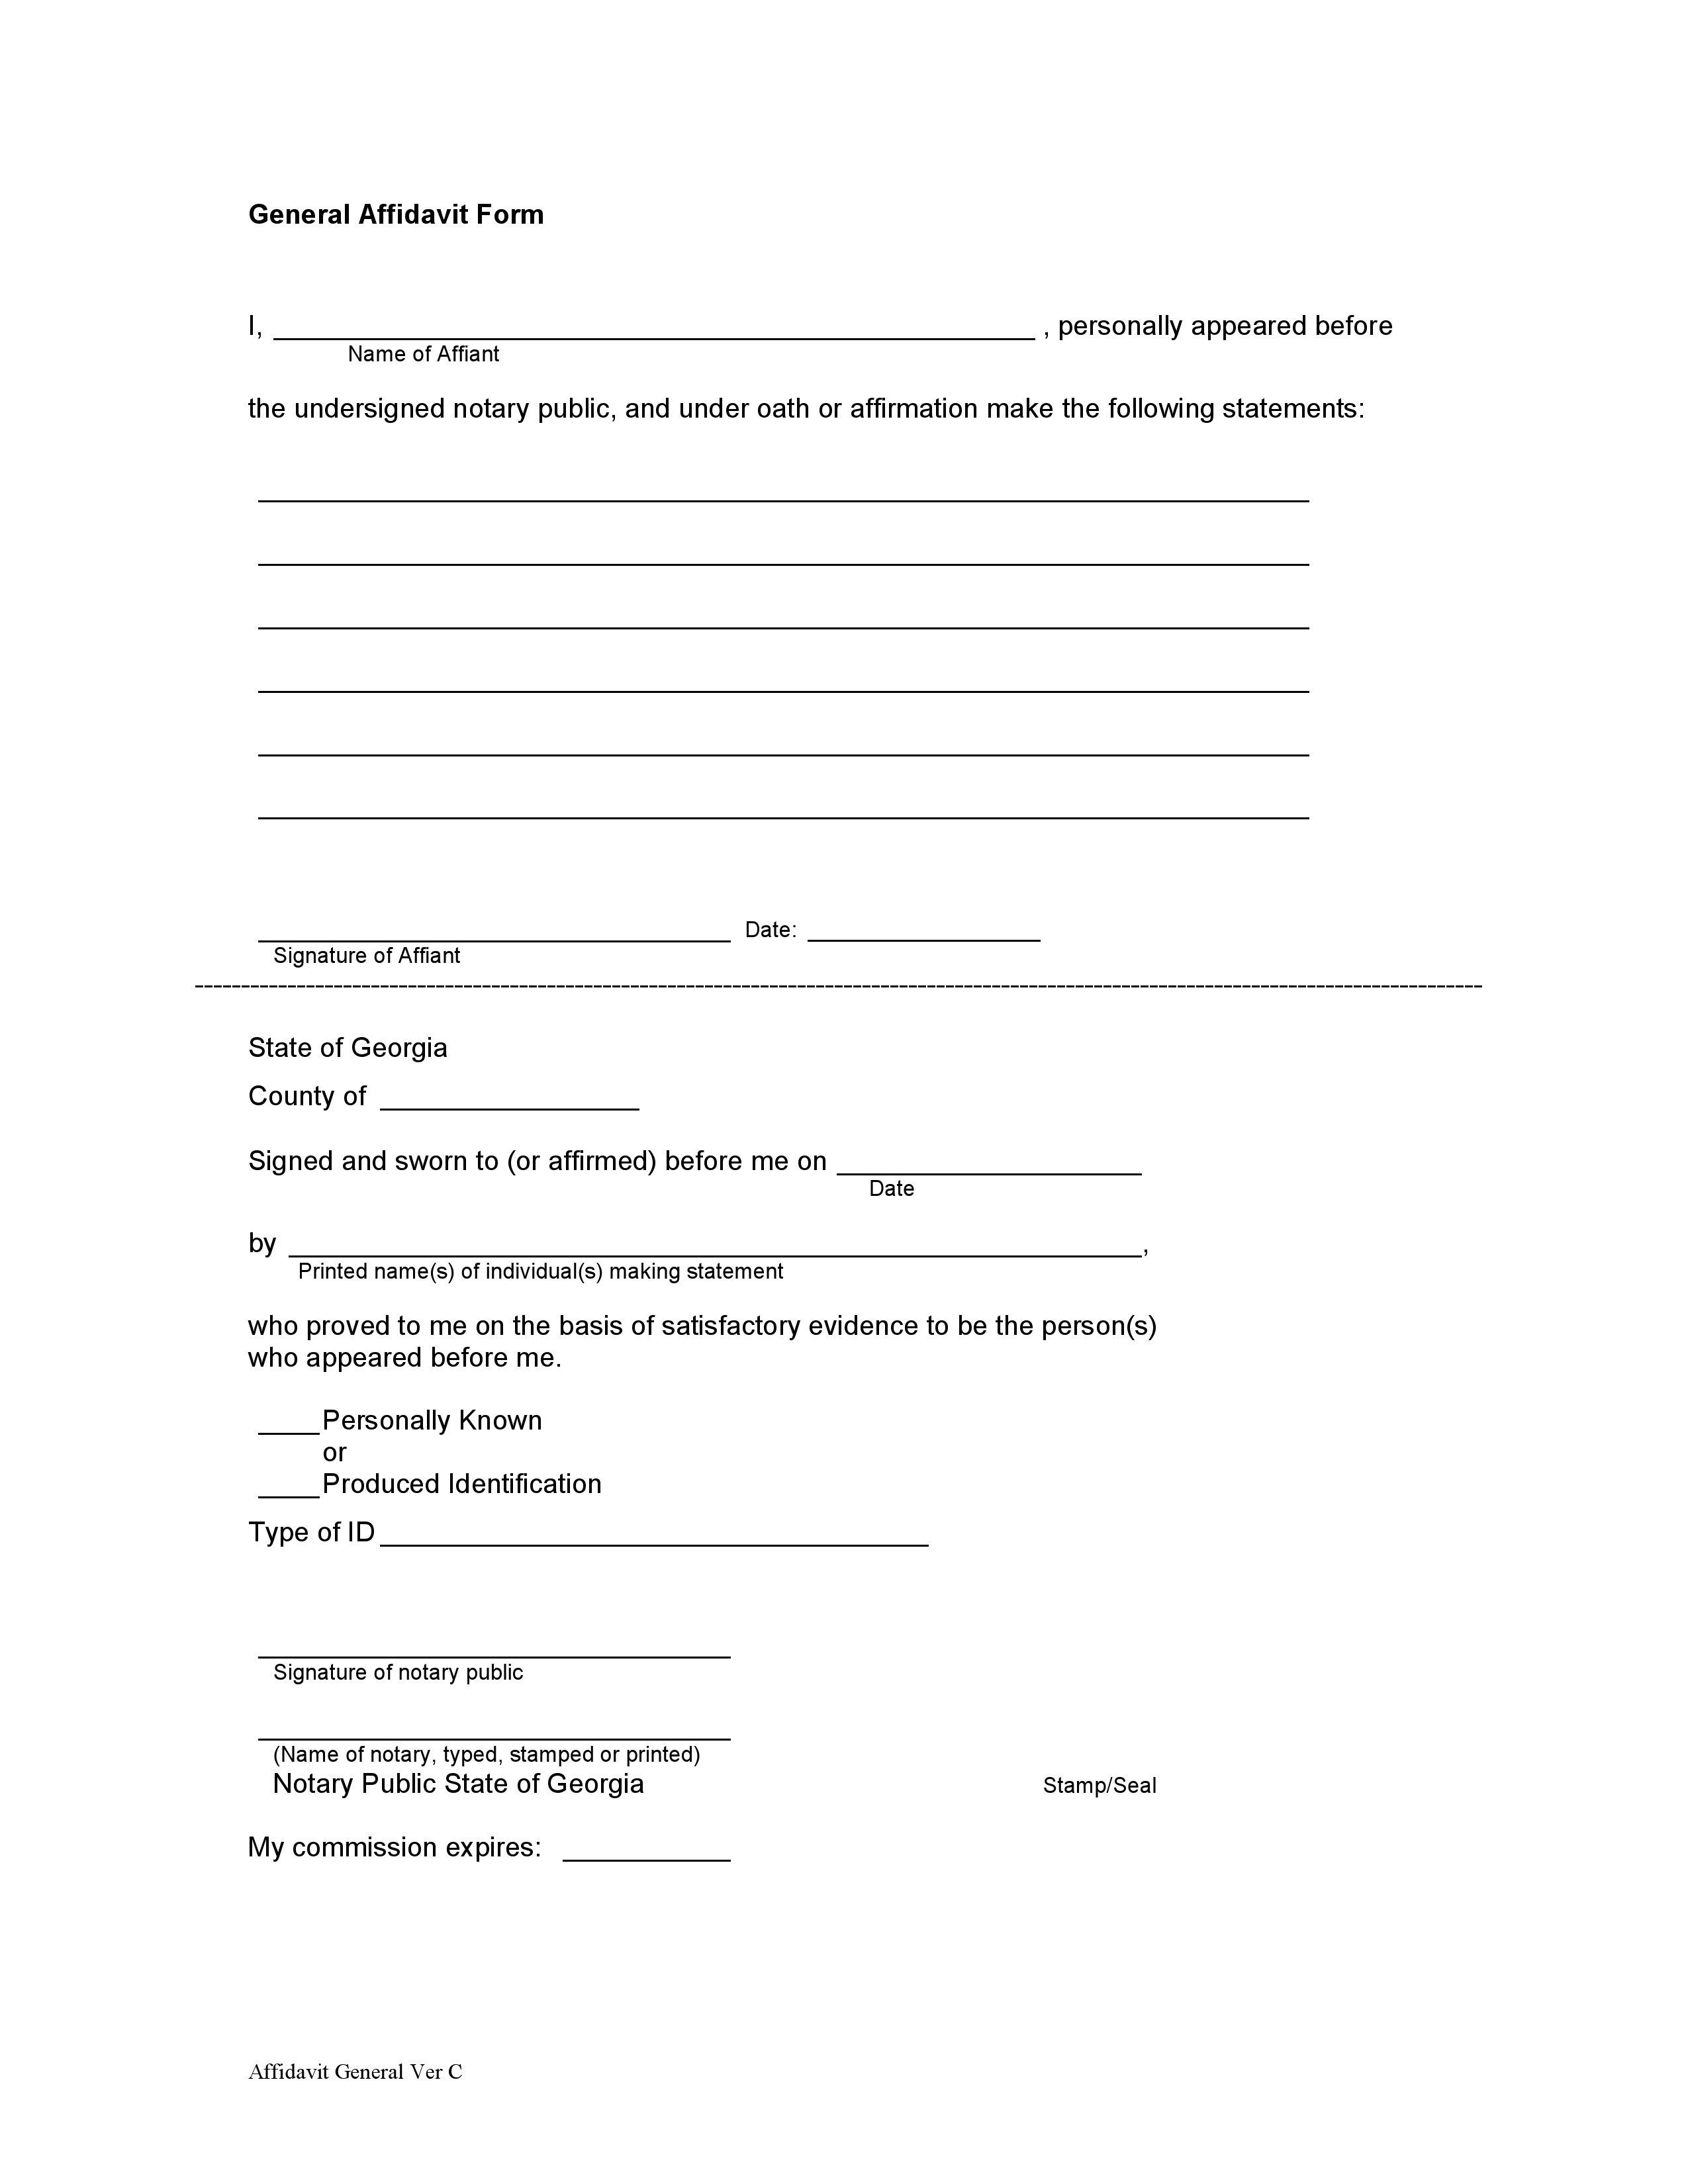 Georgia General Affidavit Form with Notary Public – Notary